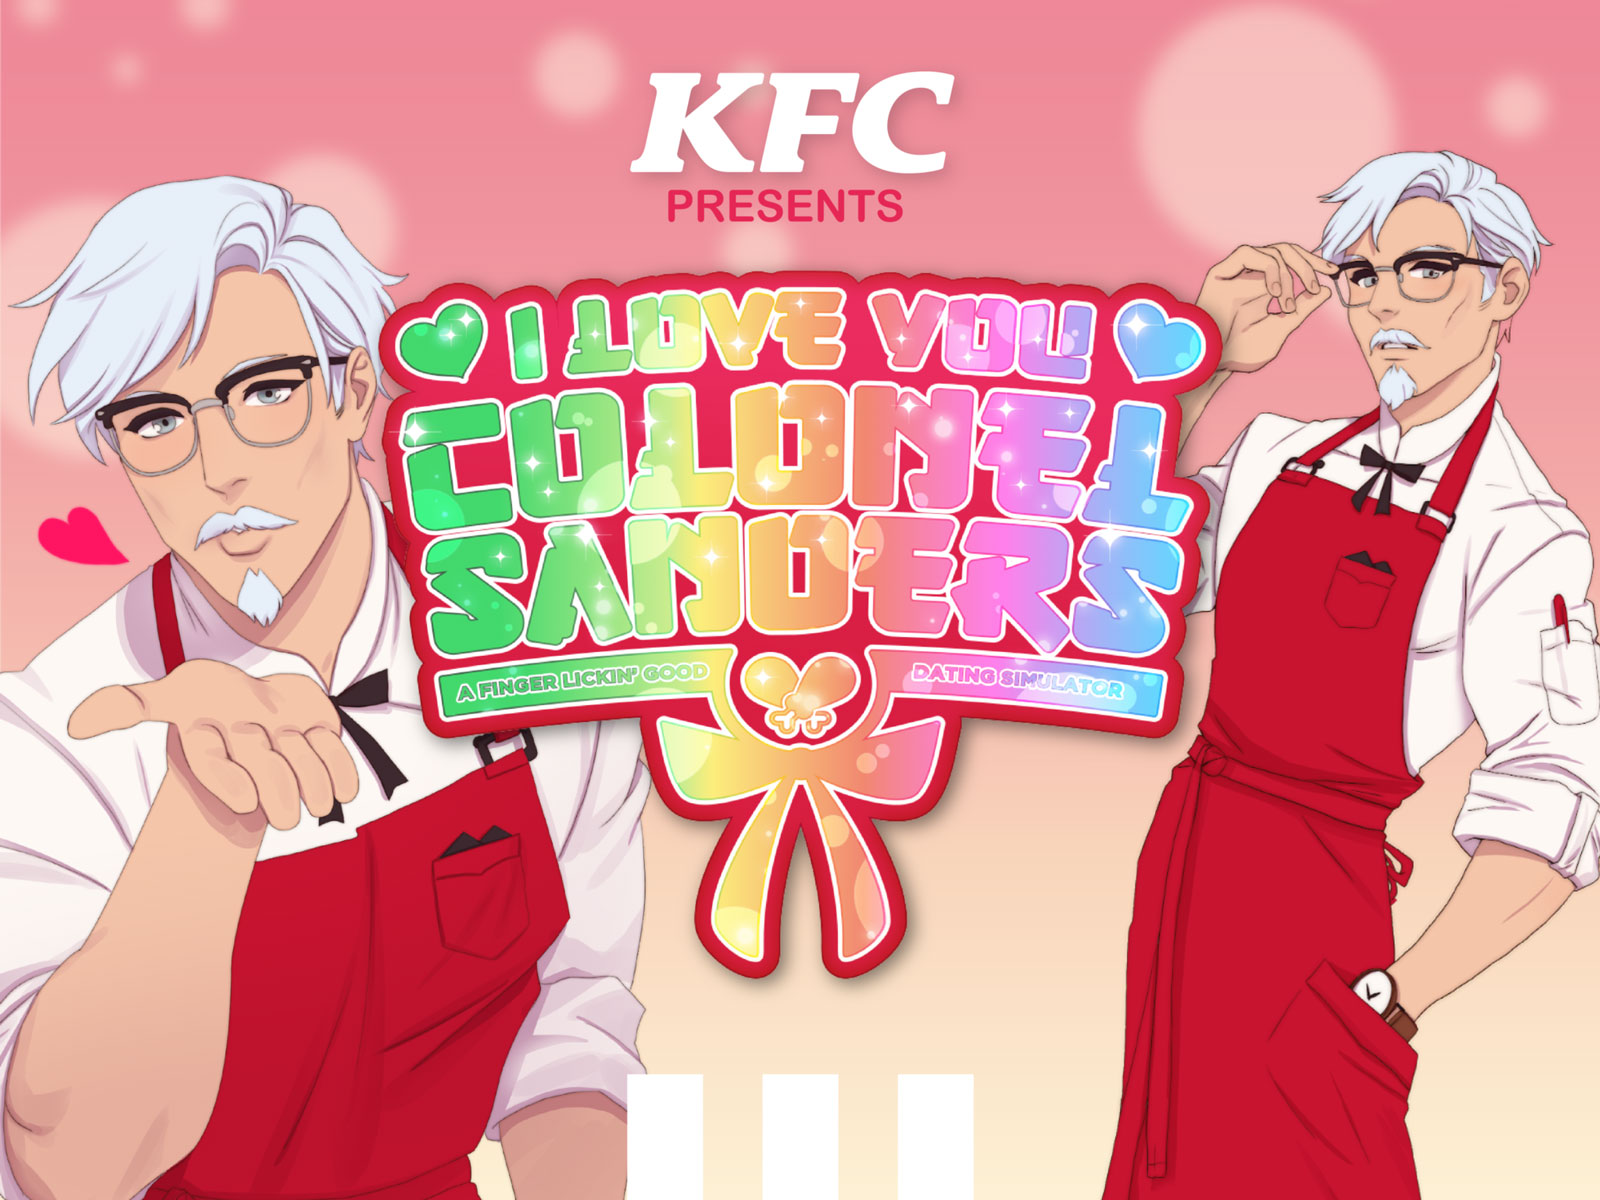 kfc-dating-video-game-FT-BLOG0919.jpg